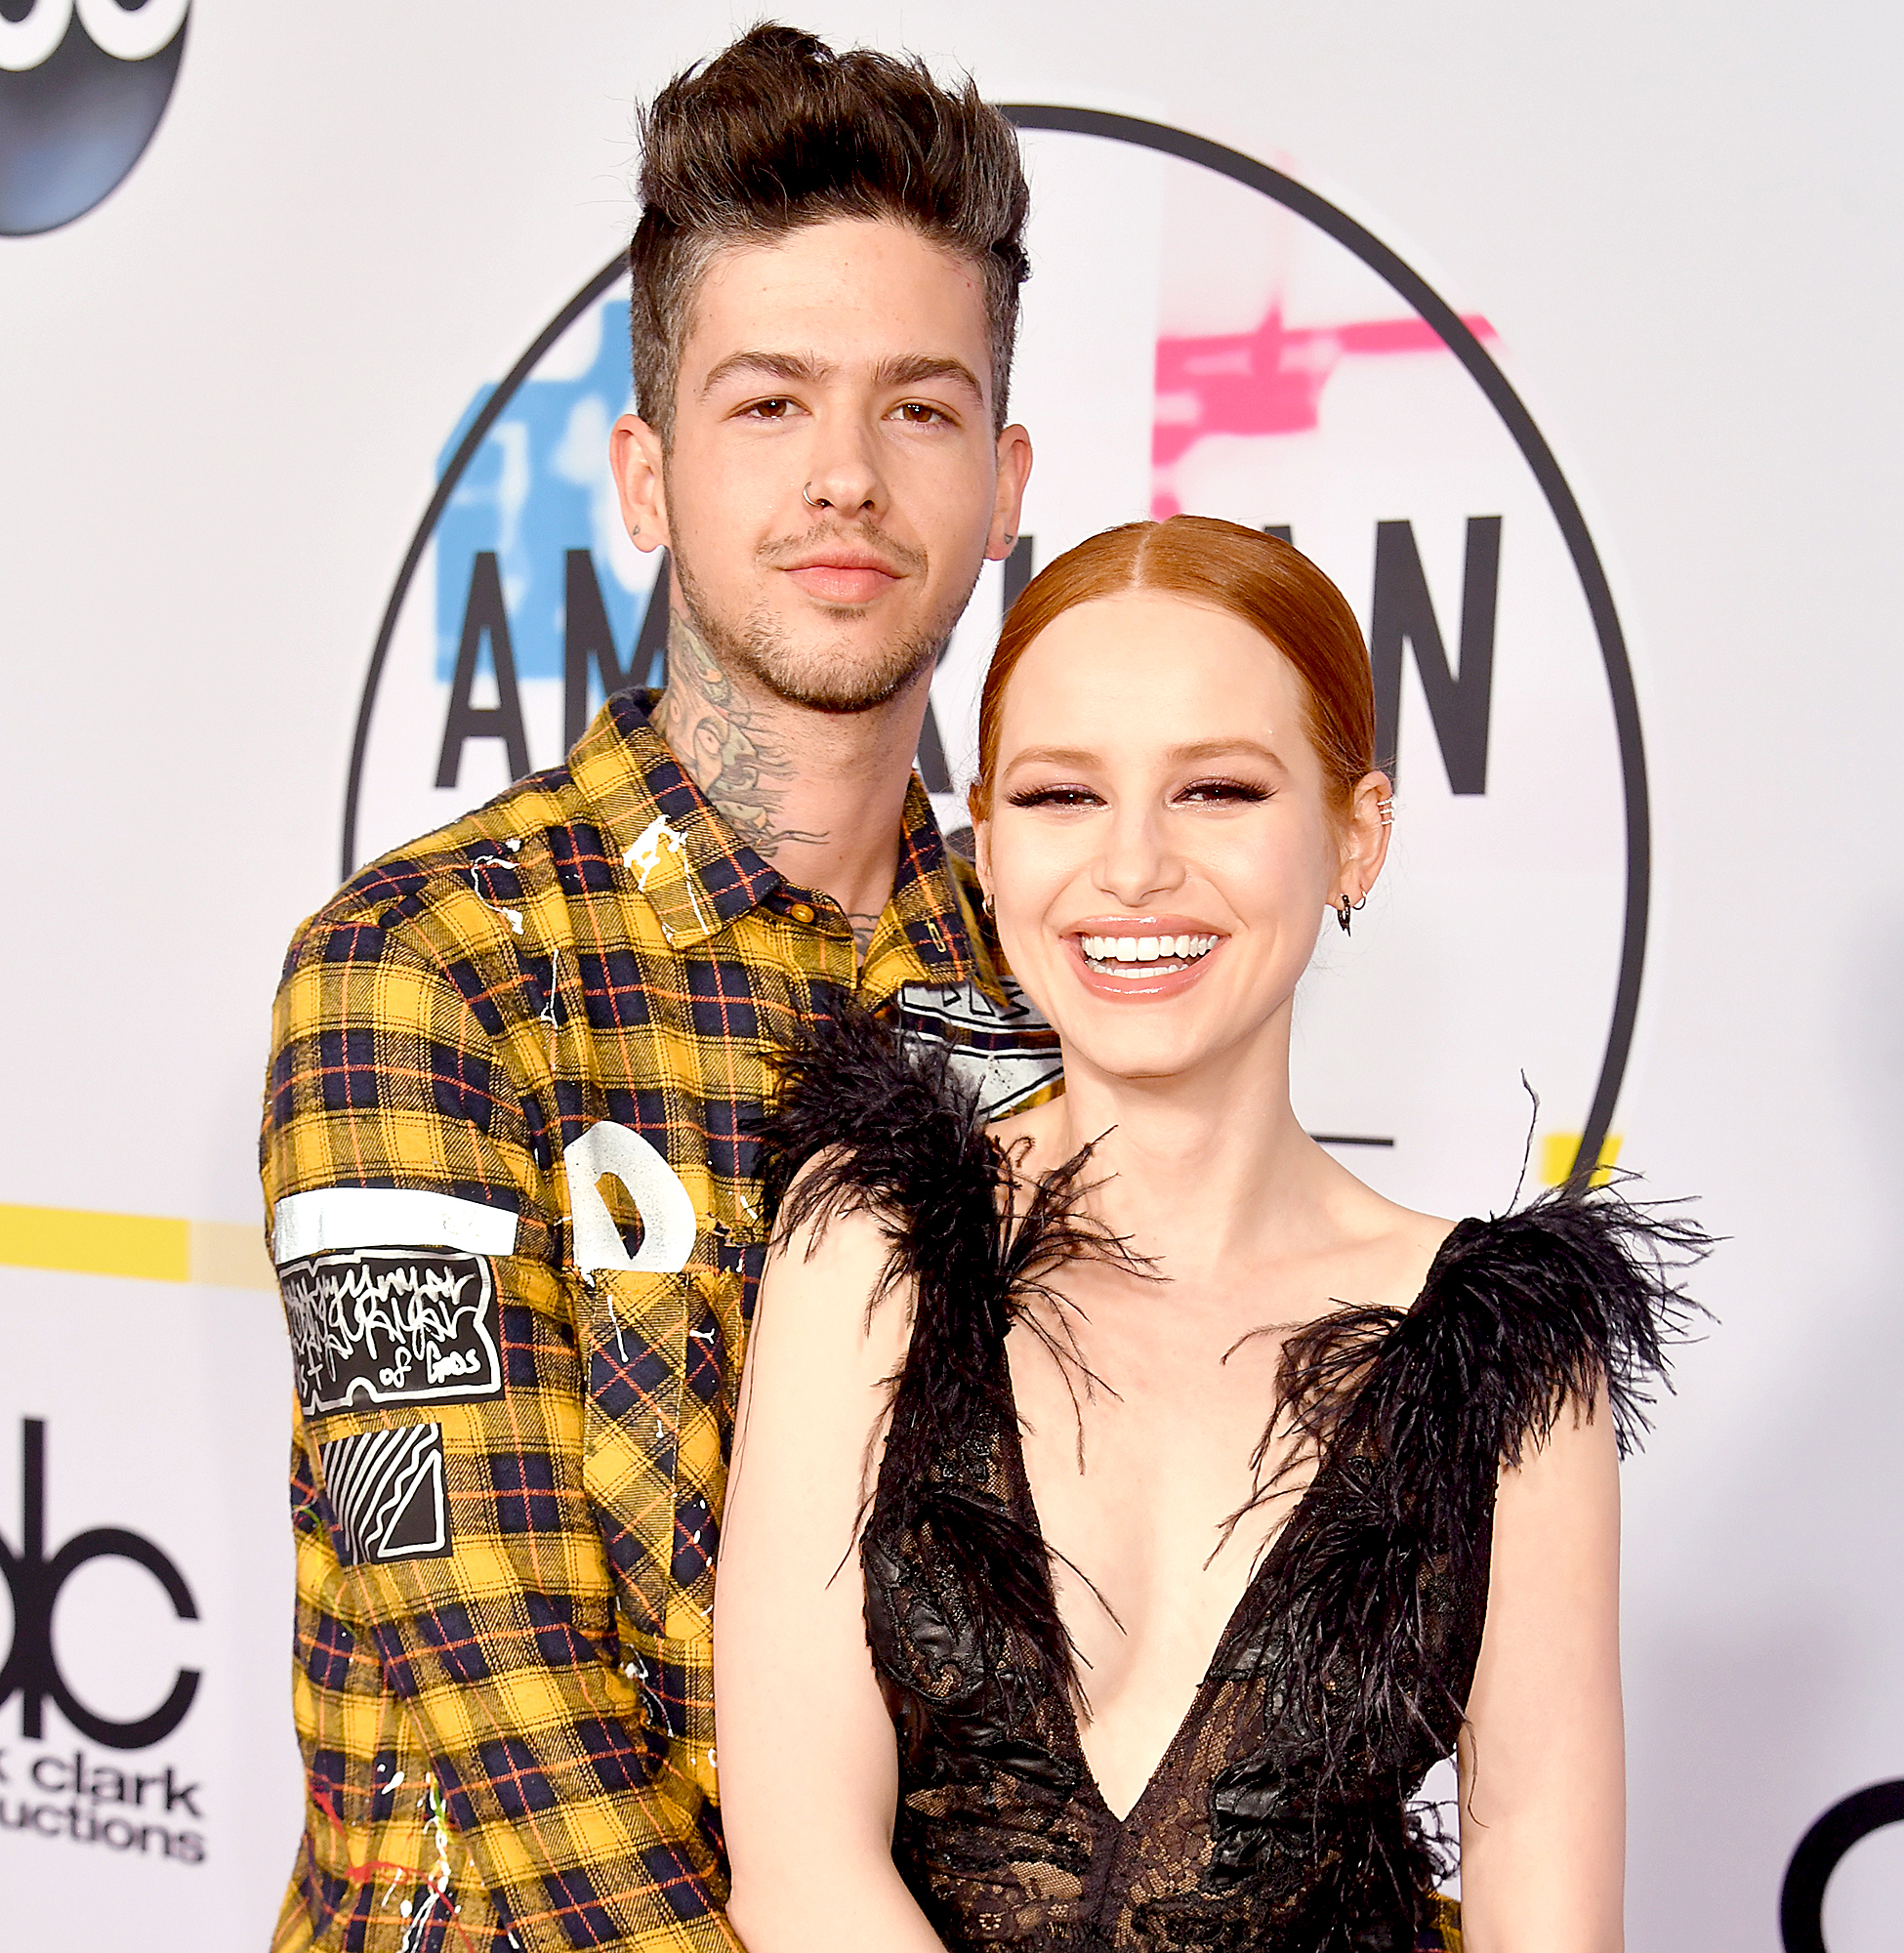 Madelaine-Petsch-and-Travis-Mills - The actress linked up with the rapper after he congratulated her on the success of Riverdale via Facebook the same month the show premiered on The CW. Now, the couple are incredibly open about their romance on the internet.